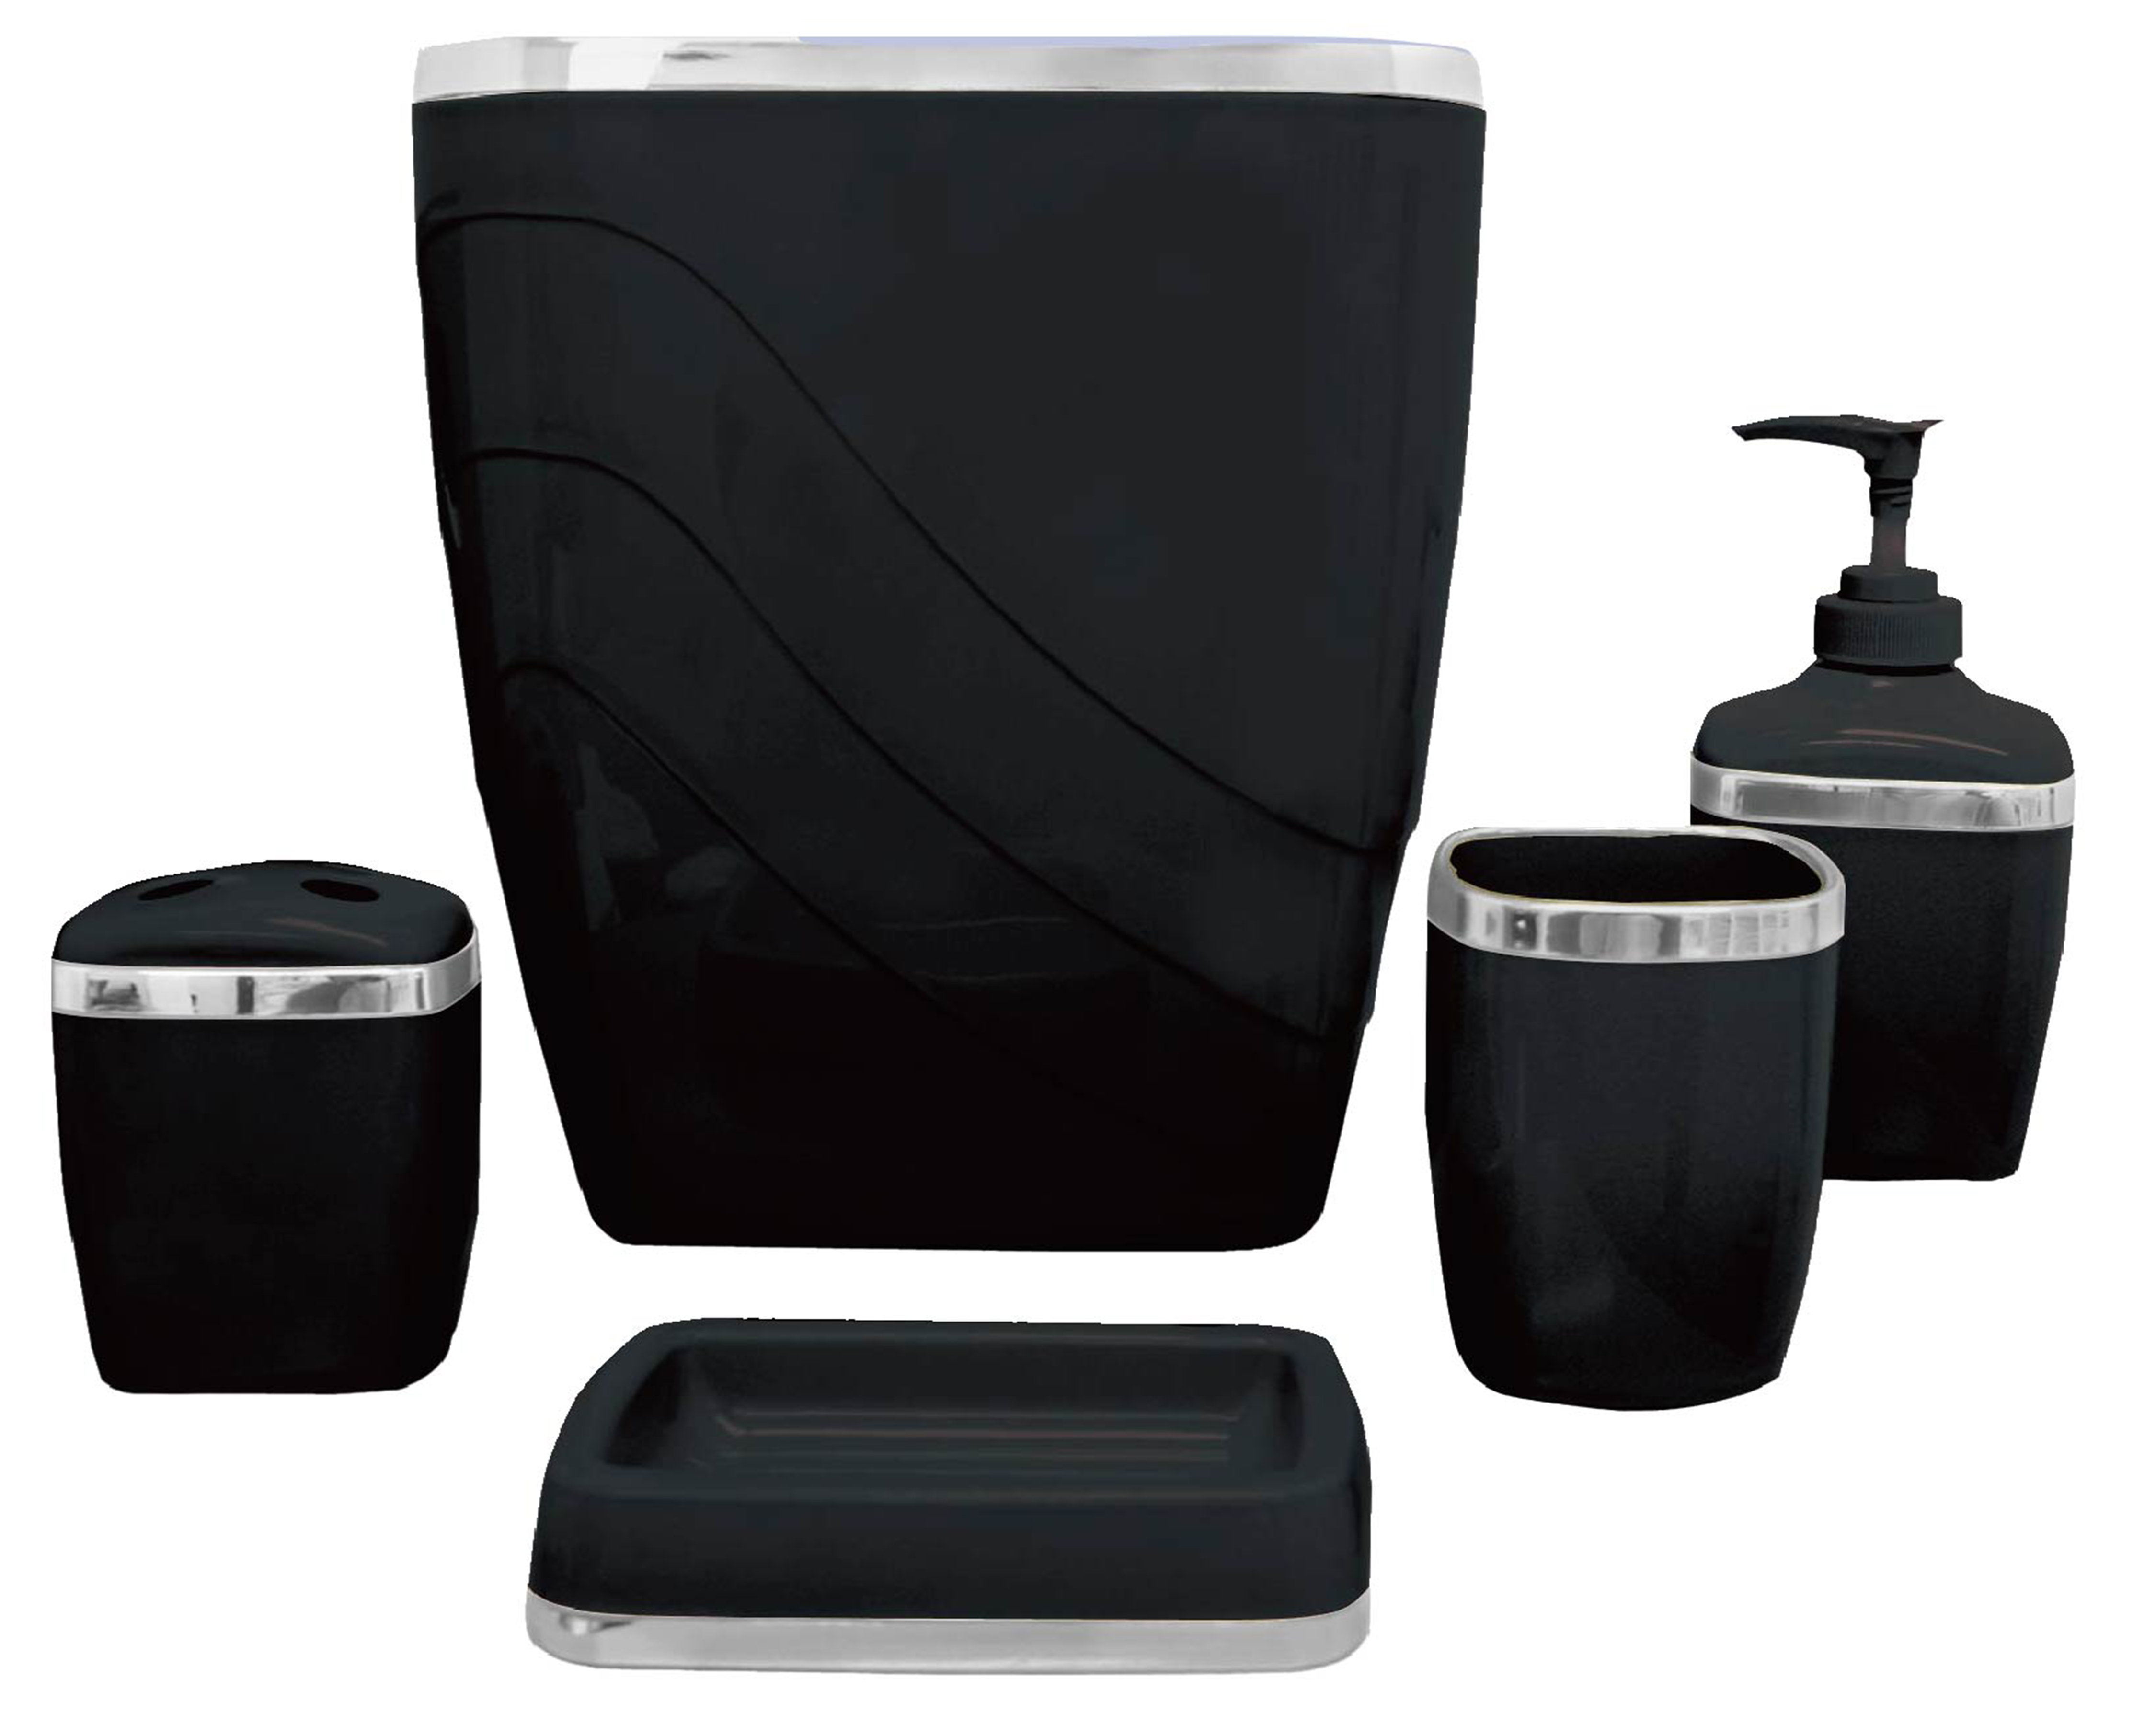 Soap Dish for Shower and Bathroom Natural Soap Holder to Keep The Soap Dry Black